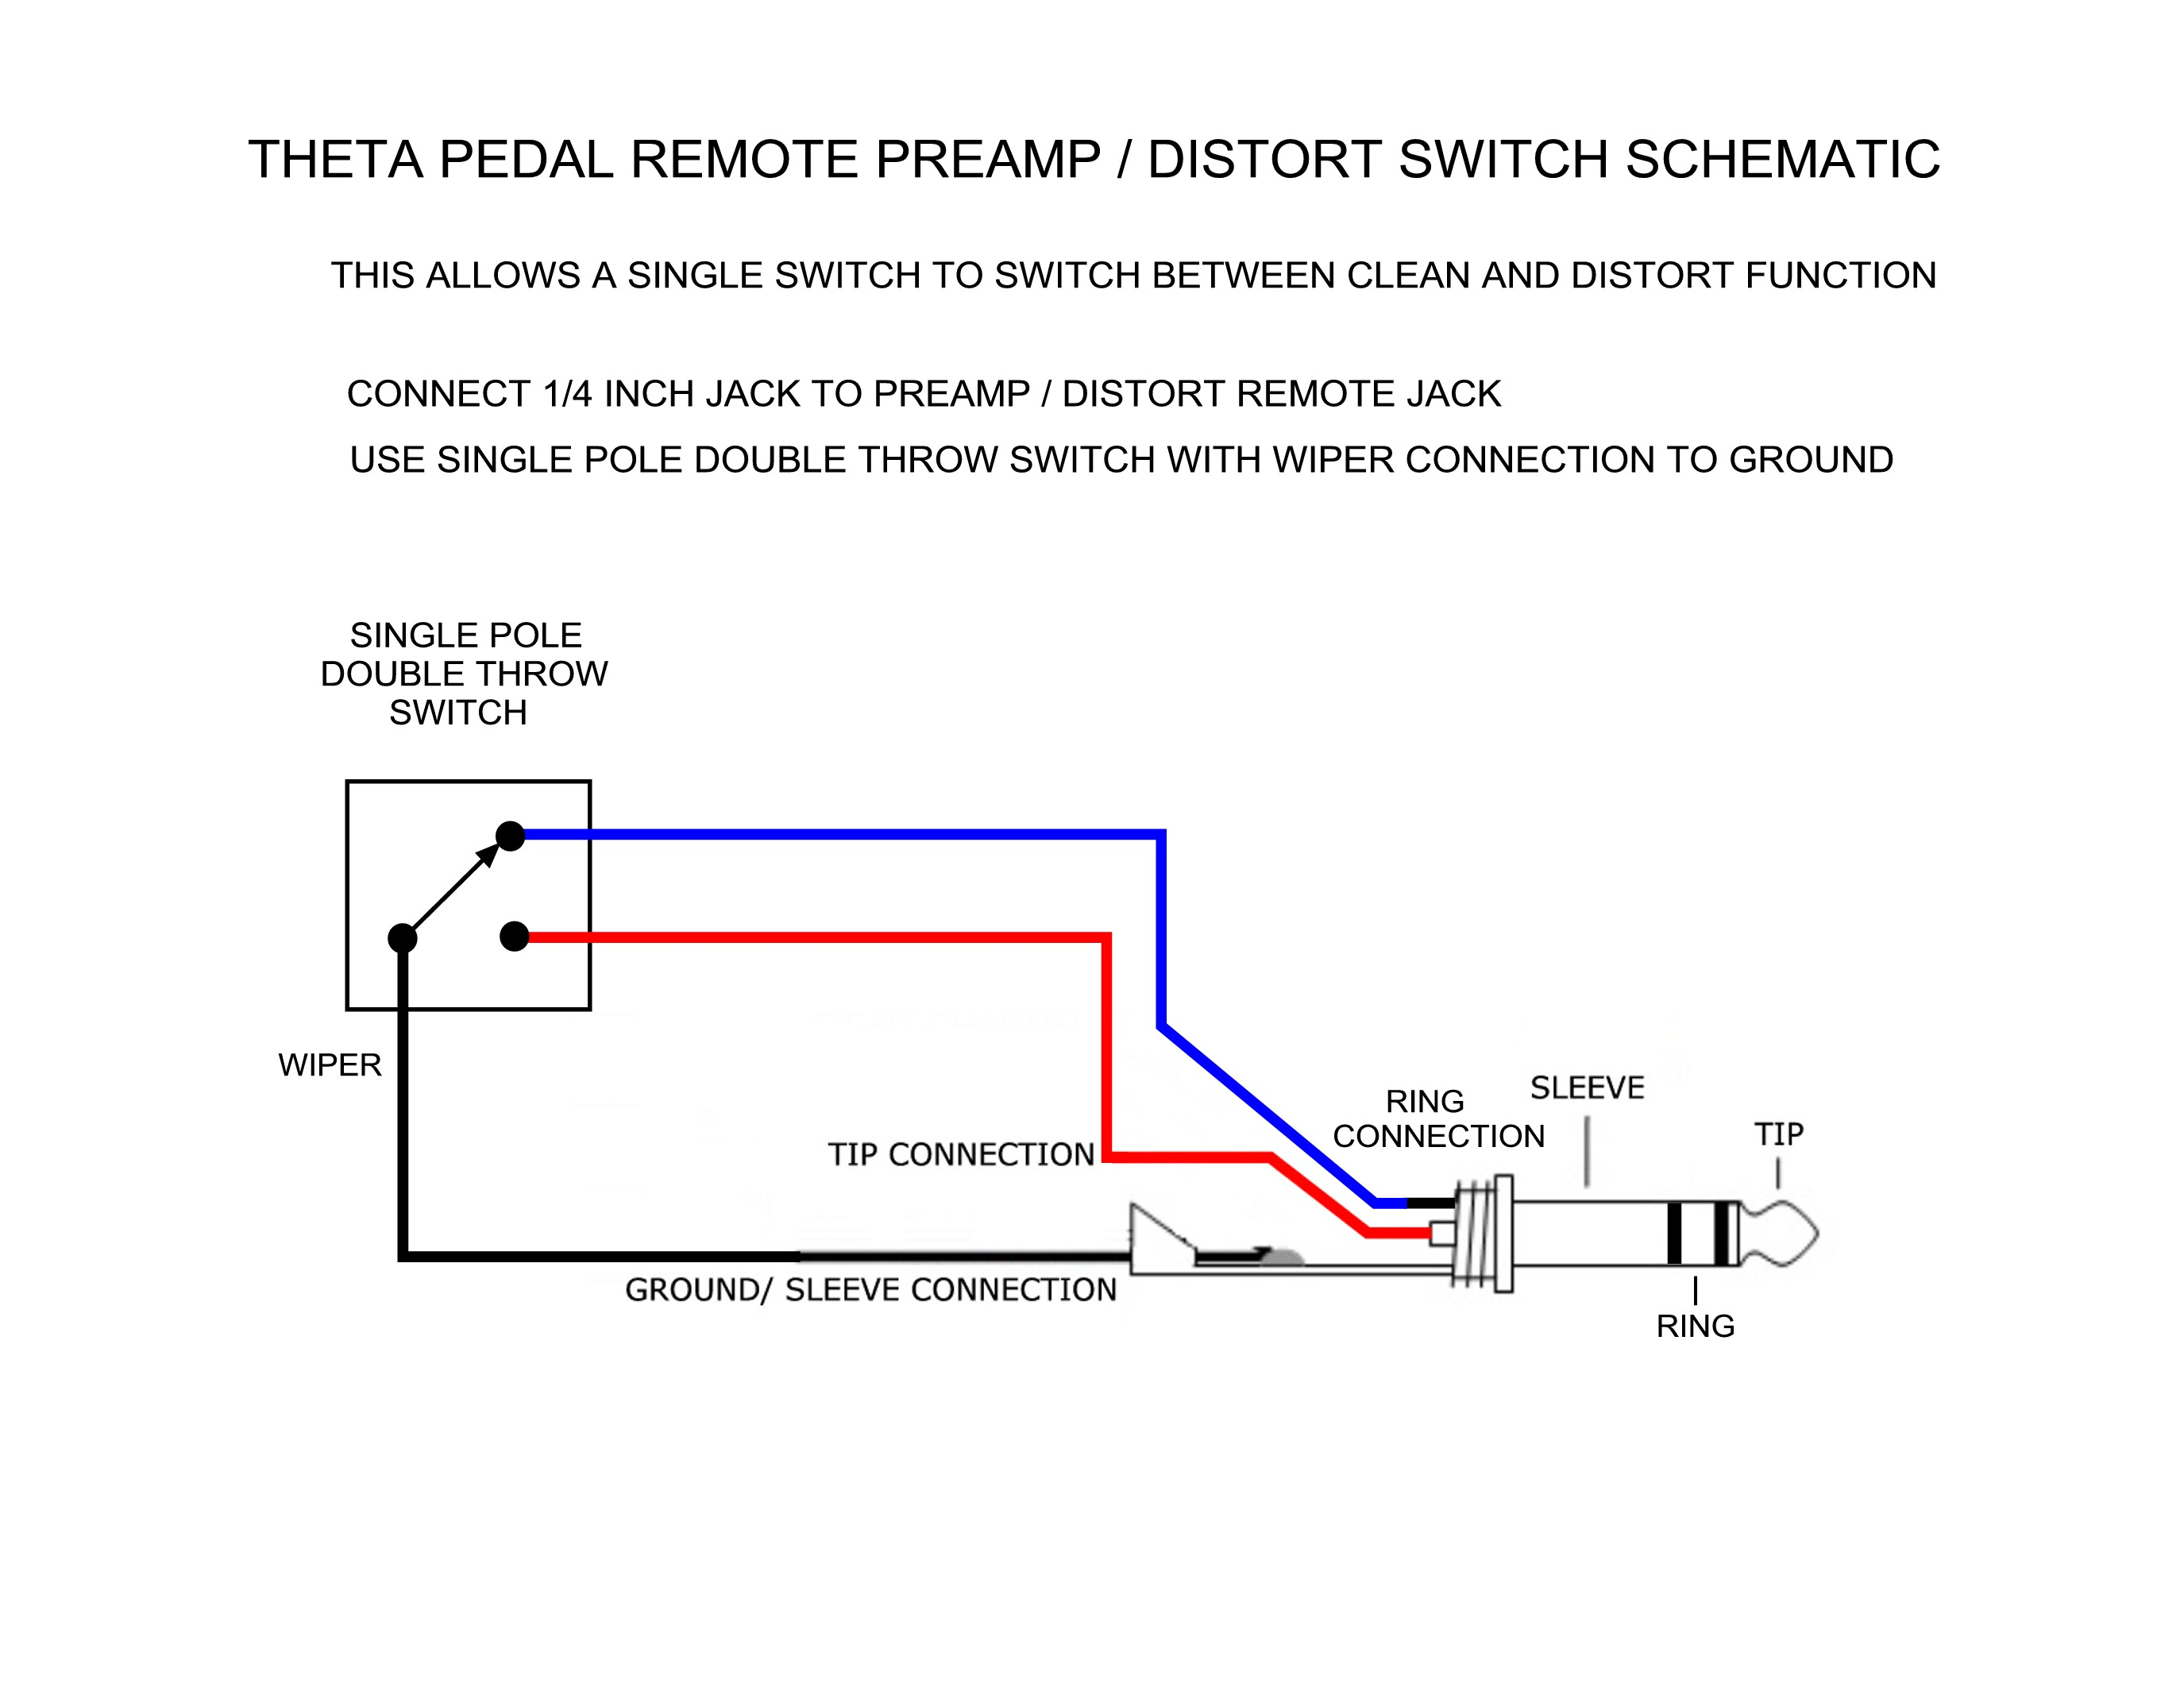 Product Faq Isp Technologiesisp Technologies 5 Way Super Switch Wiring Diagram 2 Hums Theta Pedal Remote Schematic